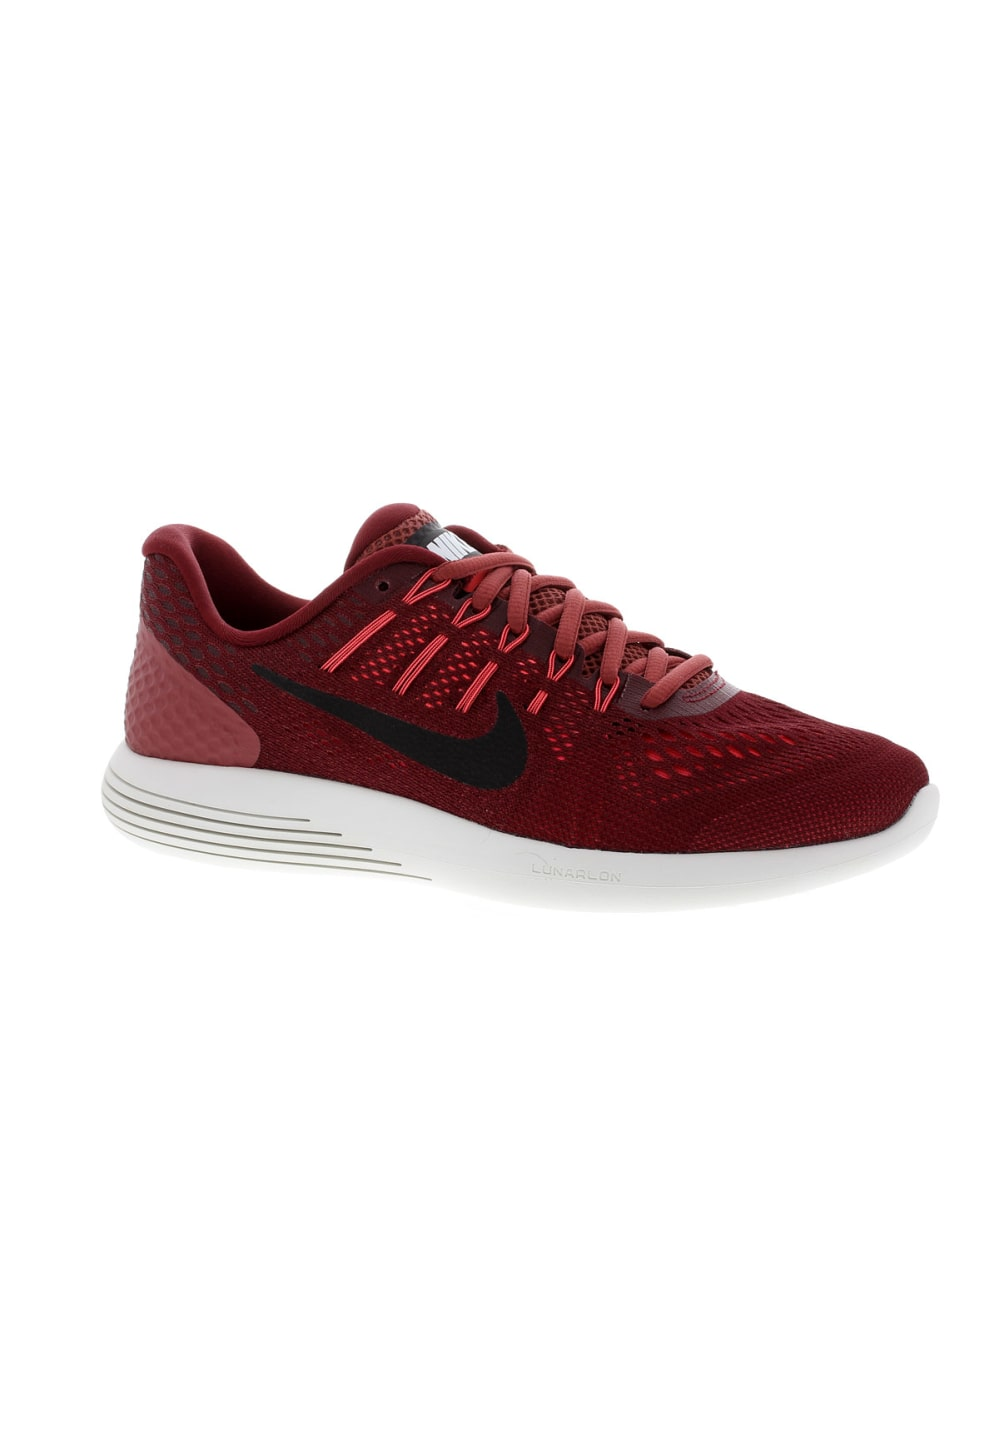 ... coupon for nike lunarglide 8 running shoes for women red 21run 079df  070c0 90aecba93a